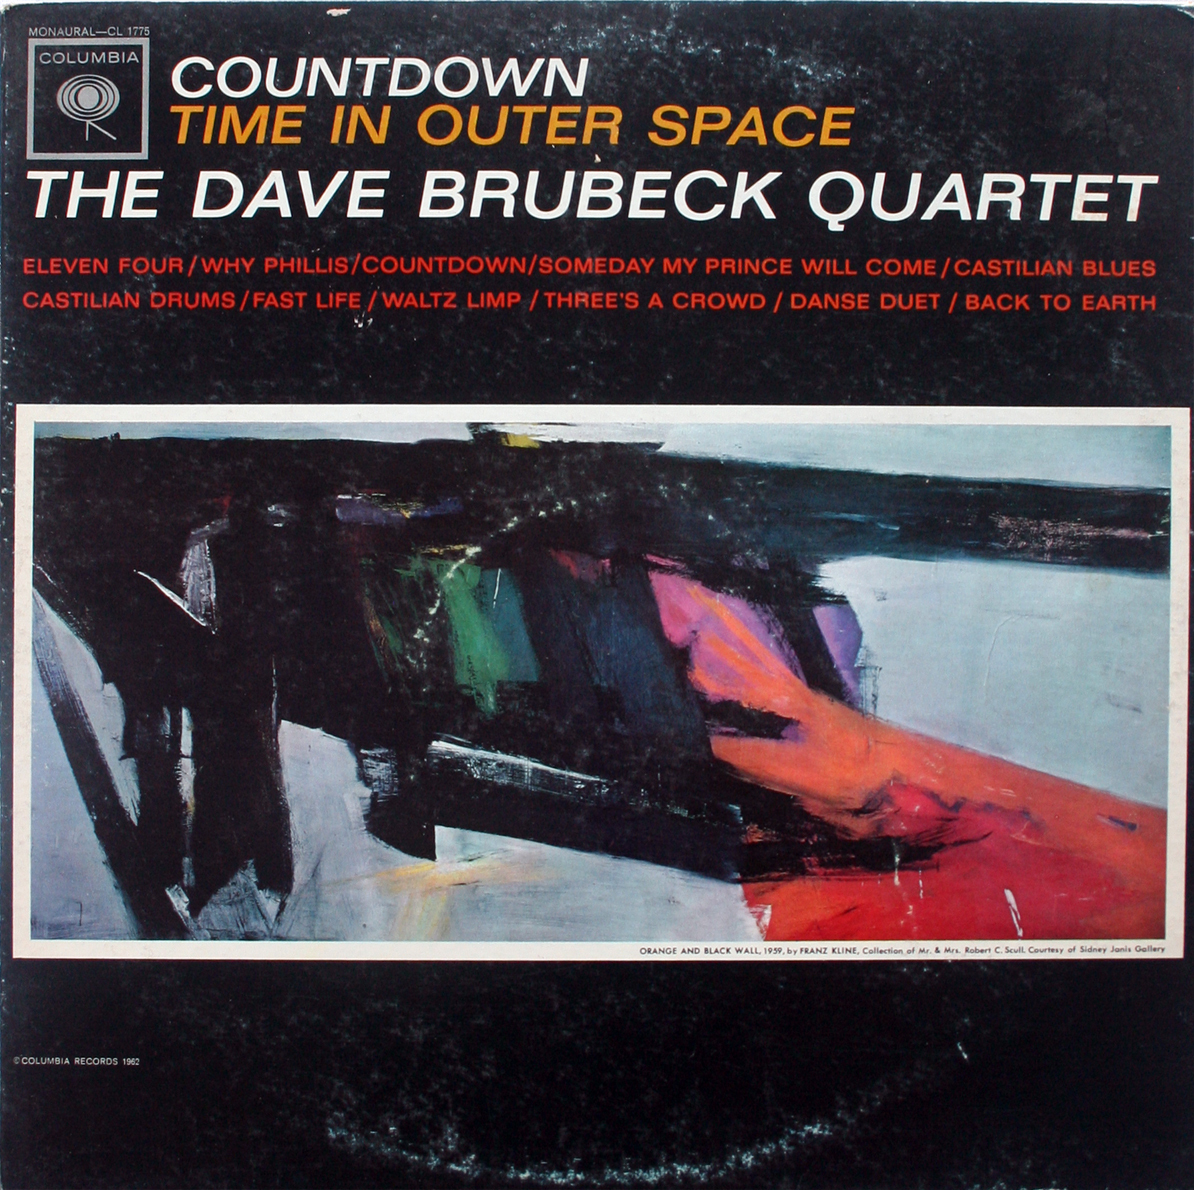 Primary image for Dave Brubeck - Countdown Time In Outer Space MONO LP